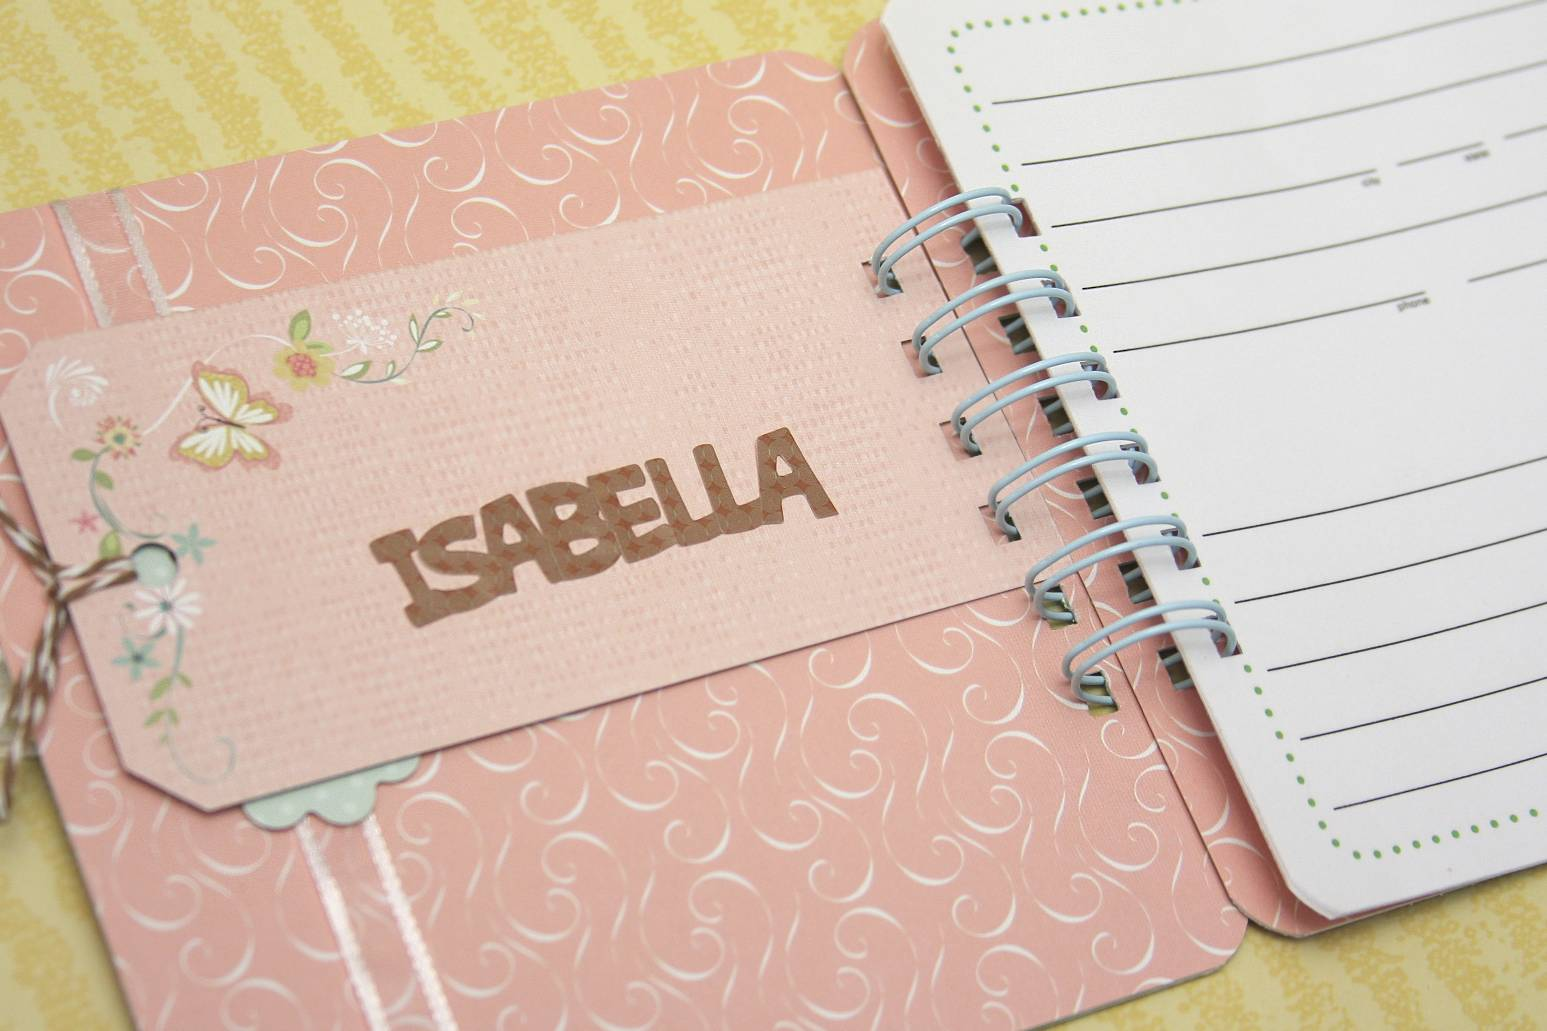 an address book for isabella